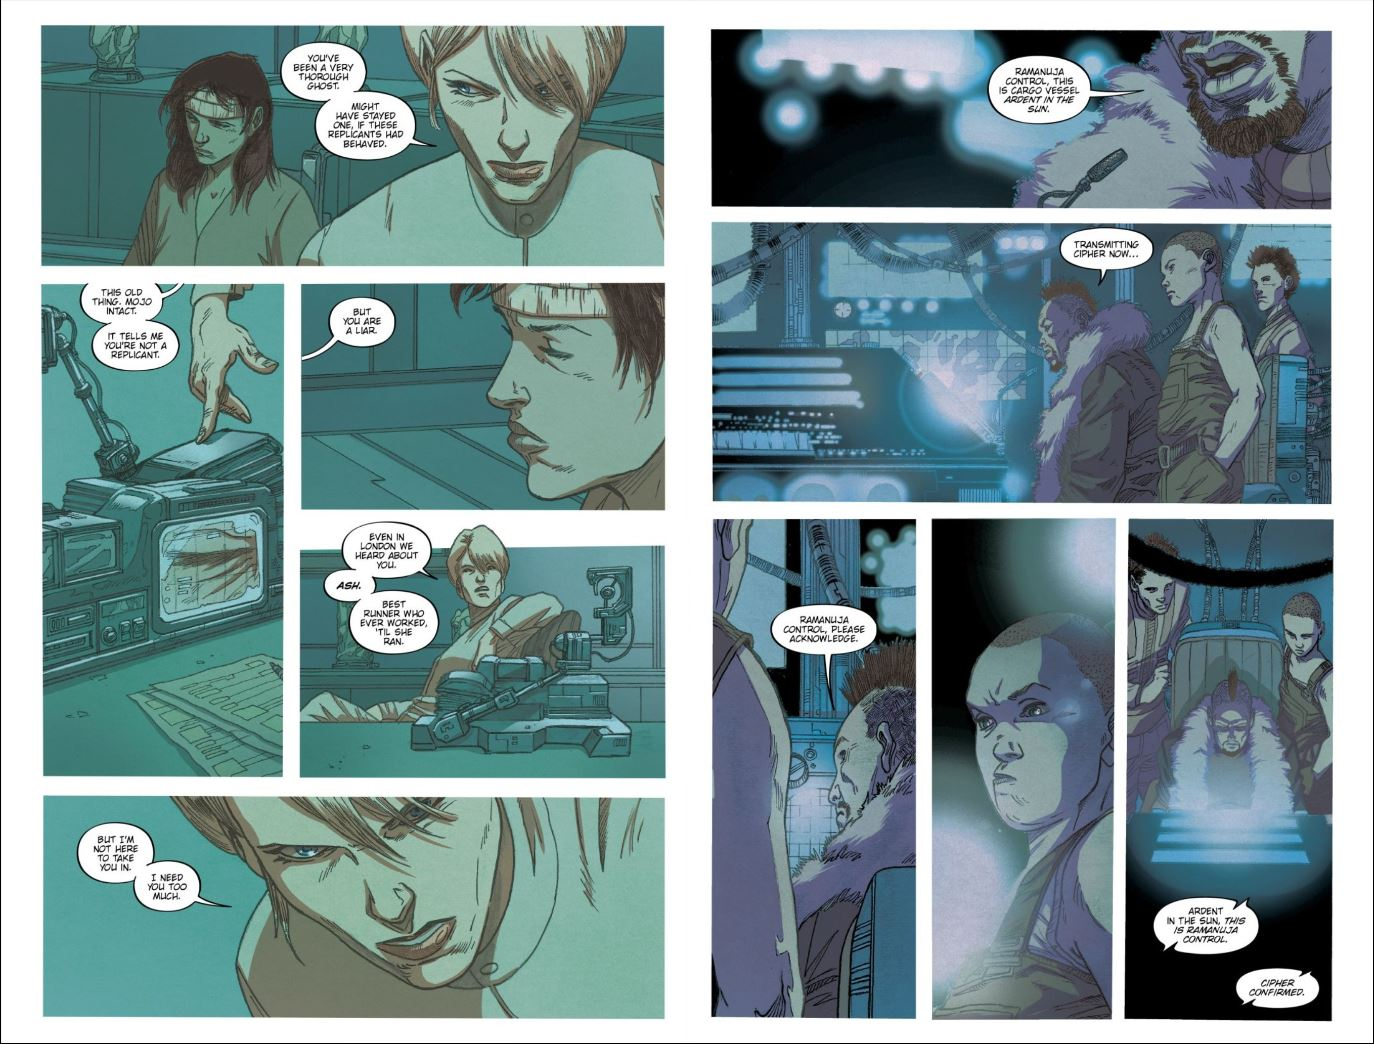 Blade Runner 2019 # 6 Review - Hythe interrogates Ash and Cleo arrives at Ramanuja